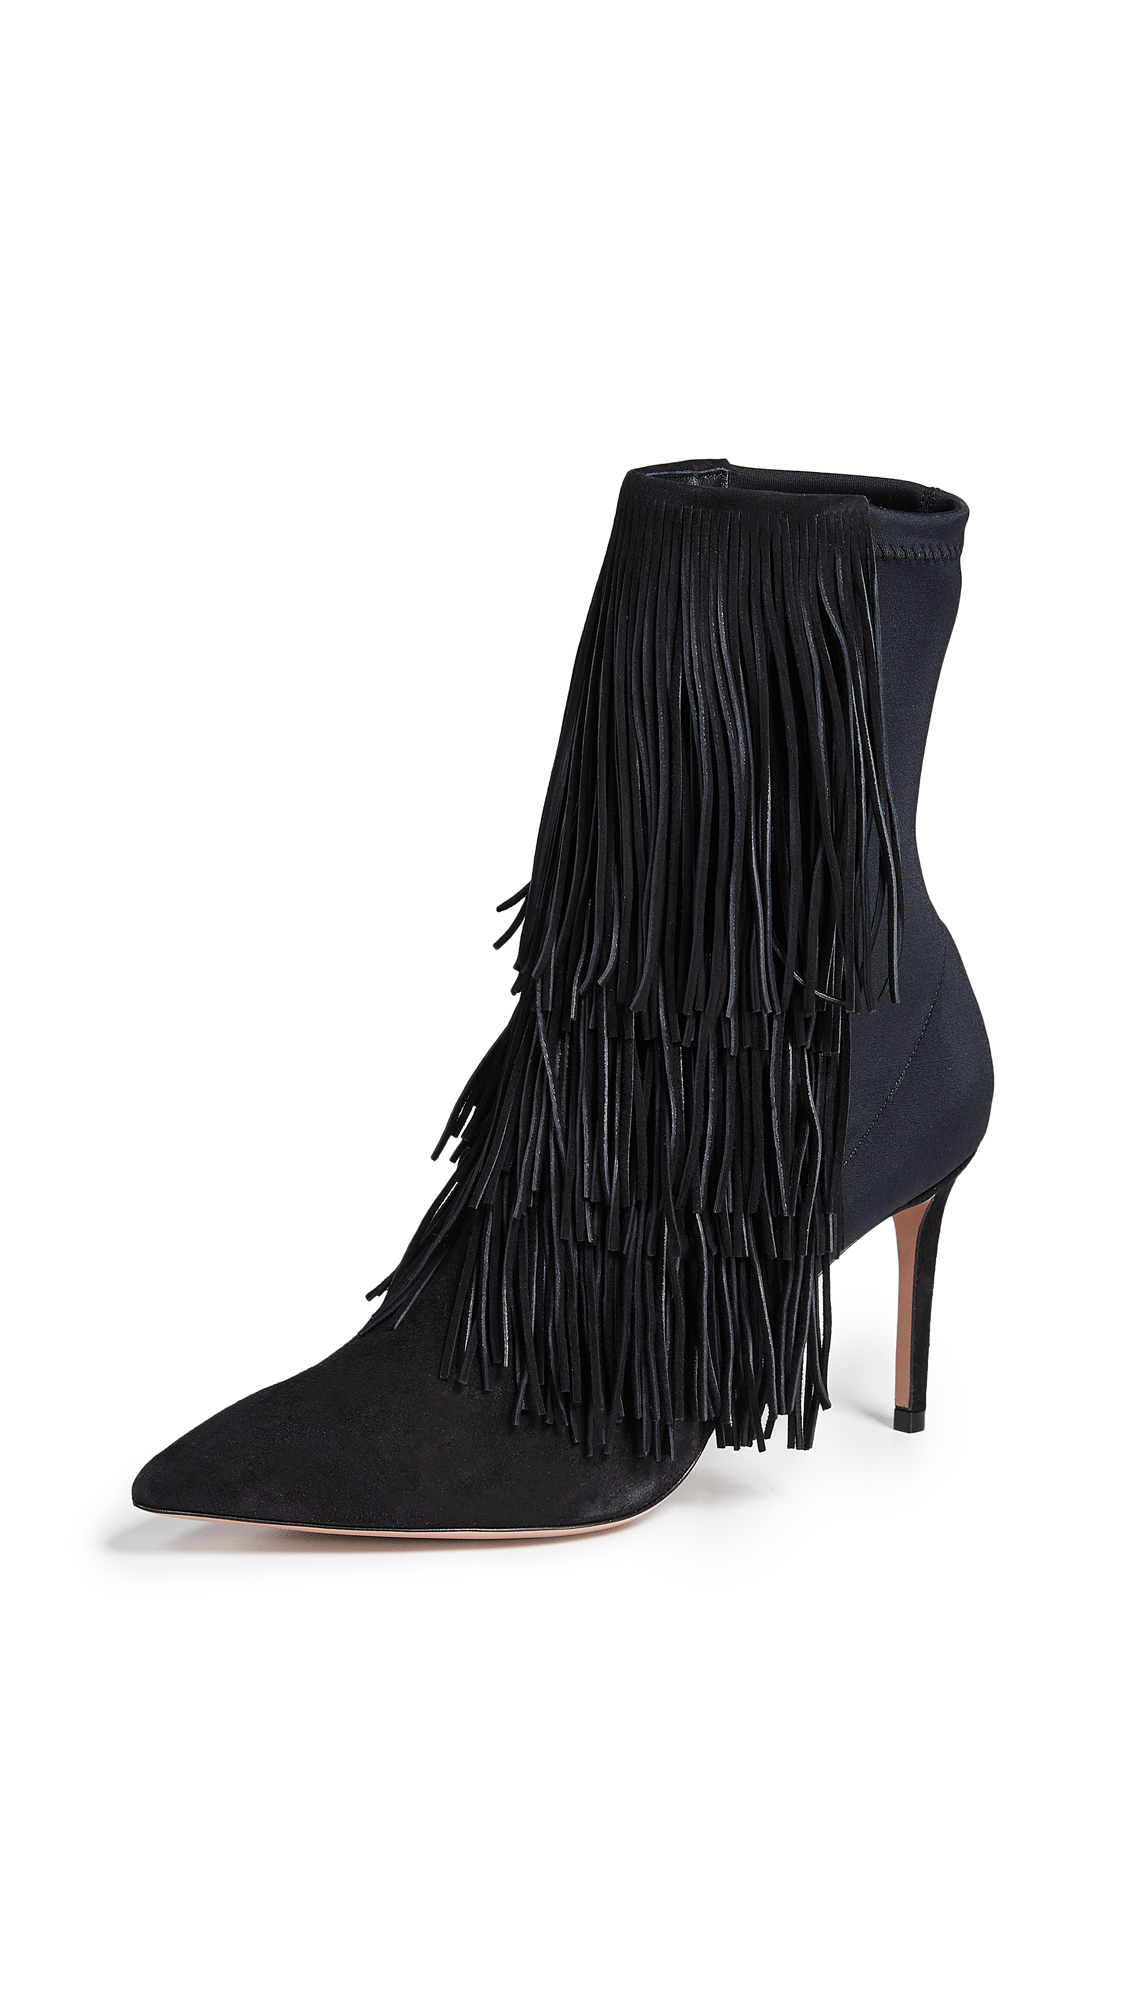 Aquazzura Shake 85 Stretch Booties - Black